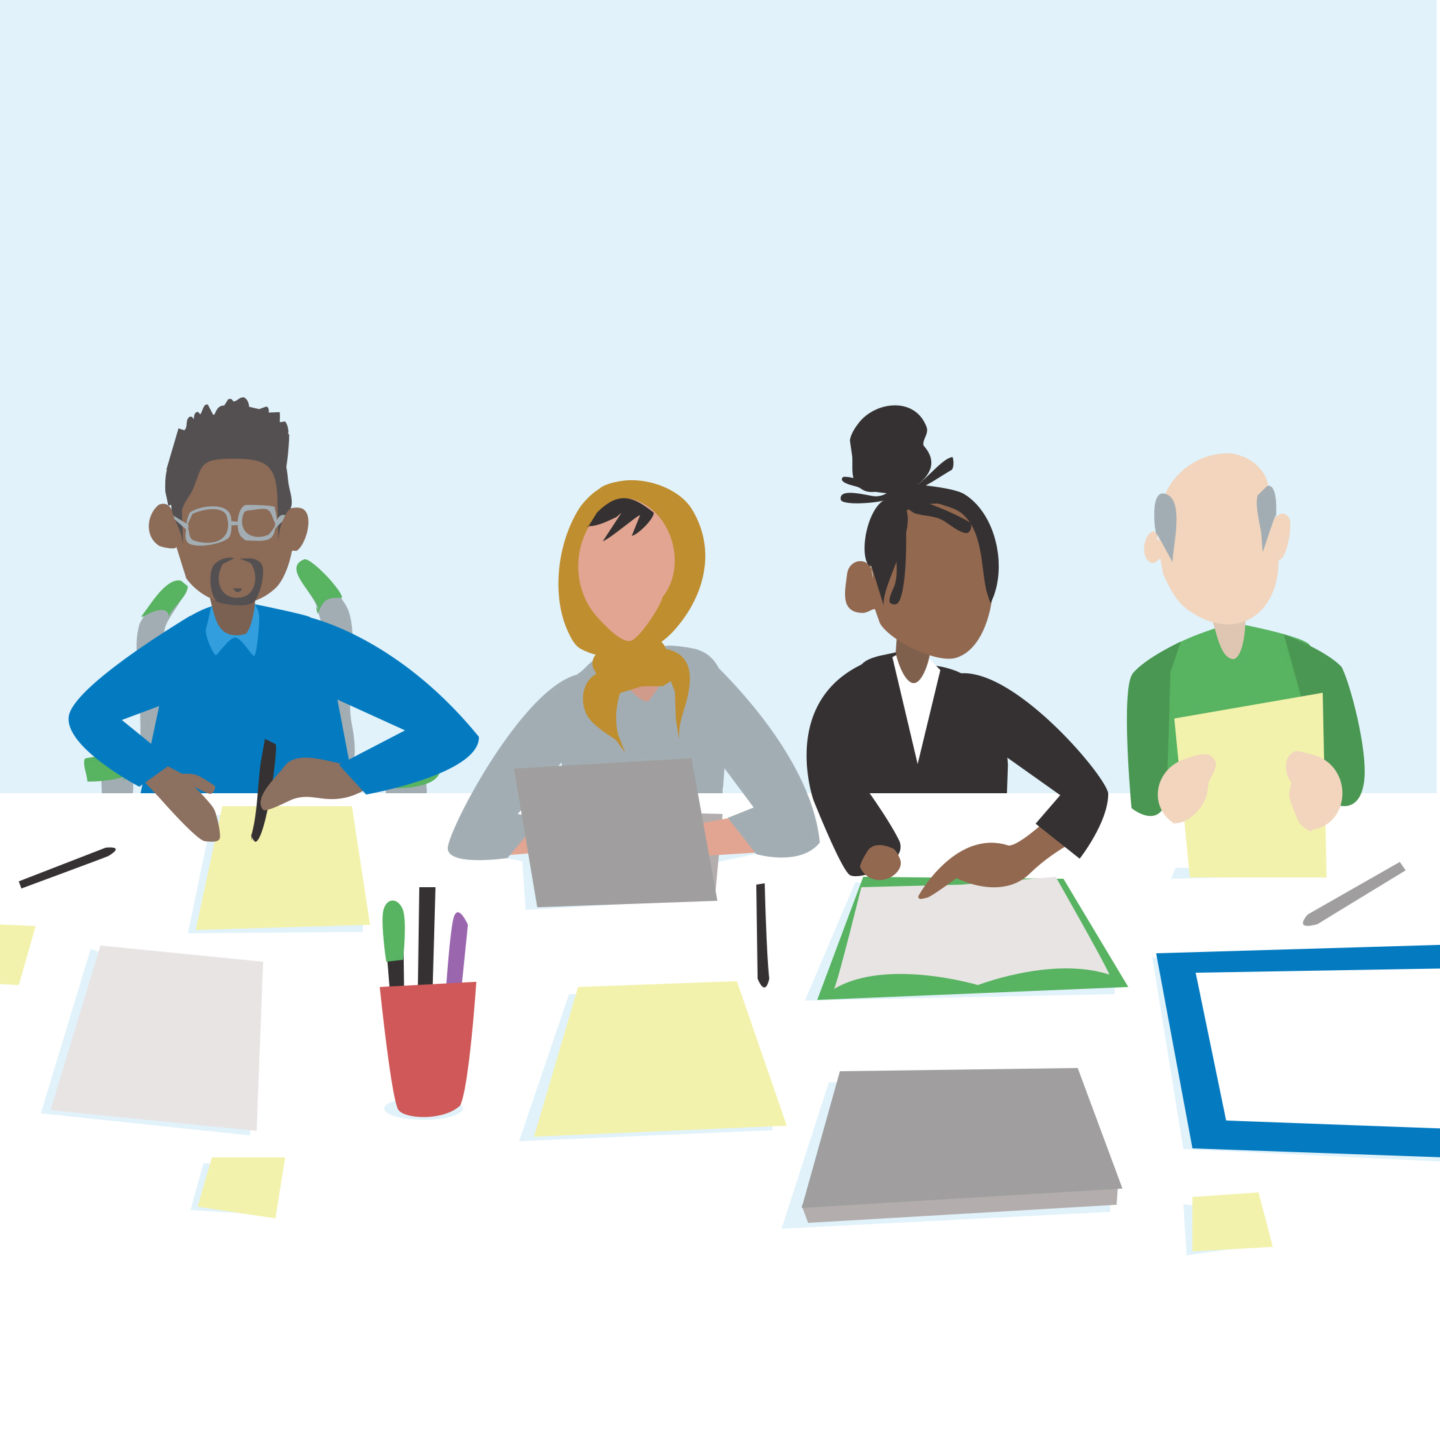 Inclusive Culture: a group of diverse people in an office setting working on a project